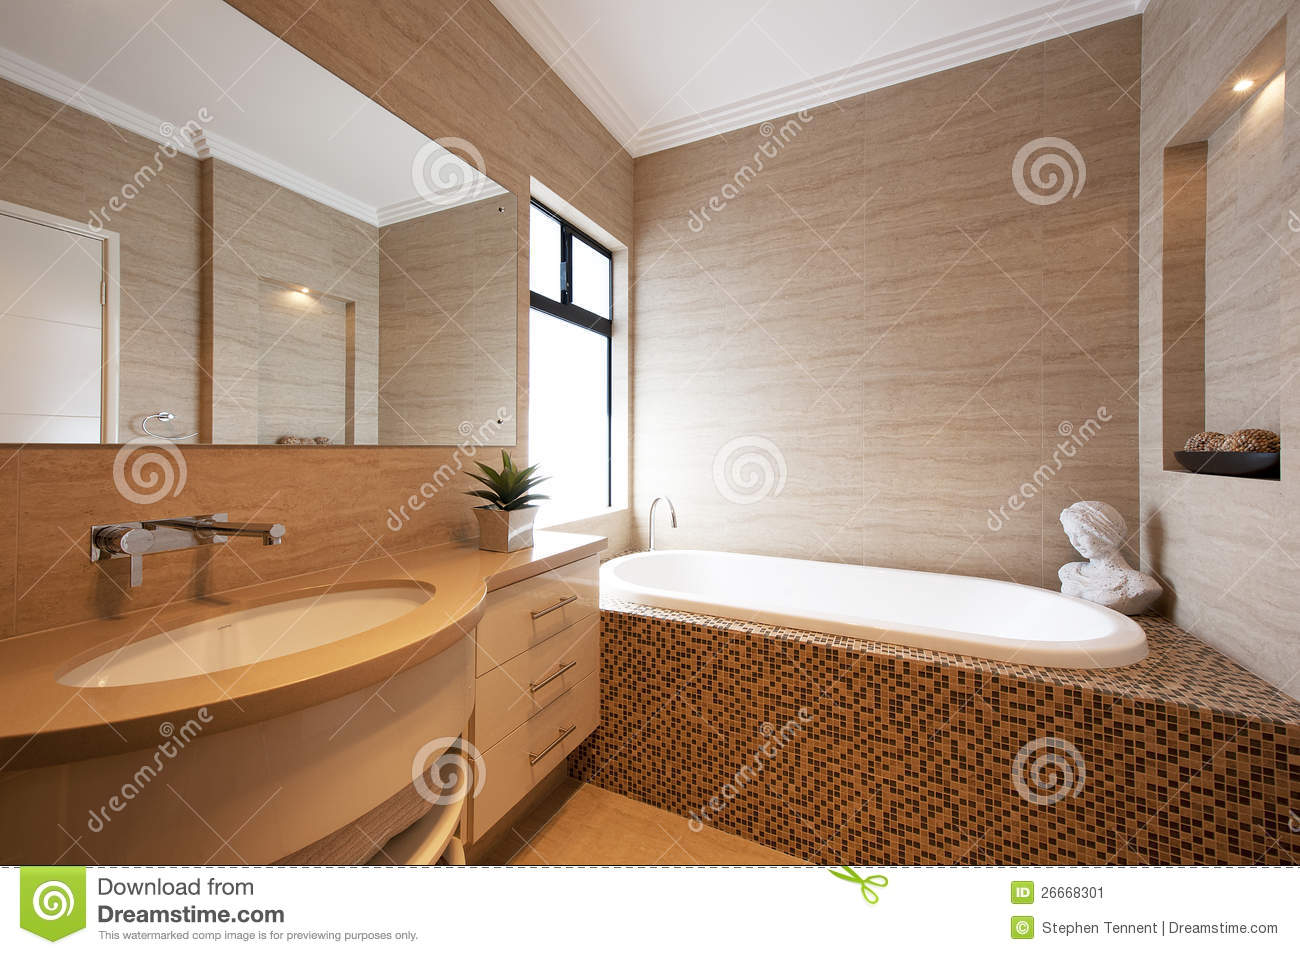 Beautiful salle de bain de luxe moderne photos awesome for Salle d bain moderne